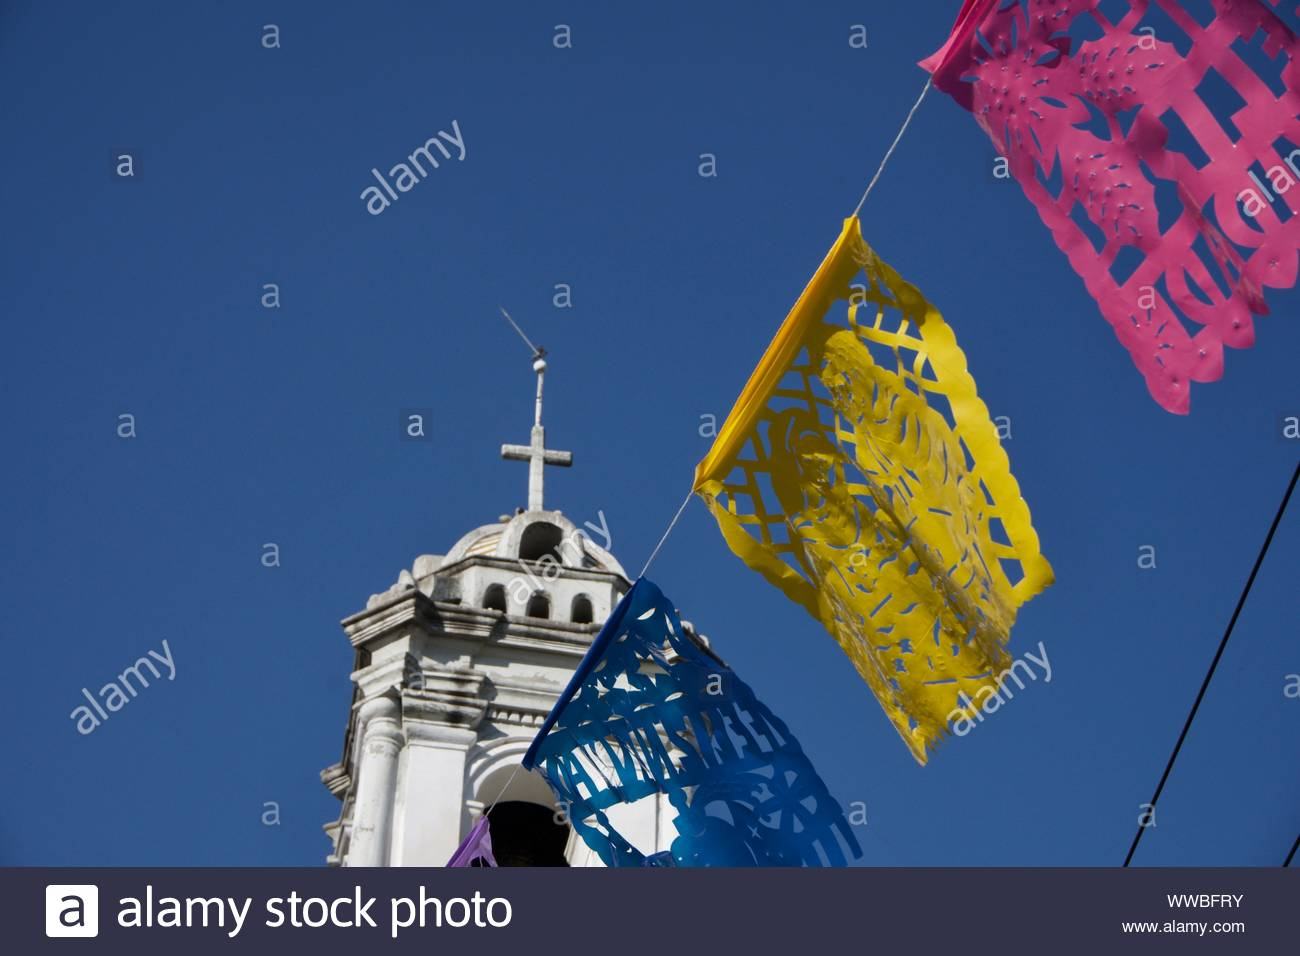 La iglesia de Santa Ana, Church of Santa Ana, el barrio de Perslvillo. La Delegación Cuauhtémoc. Papel picado (cut paper flags). Mexico City, Mexico. Stock Photo